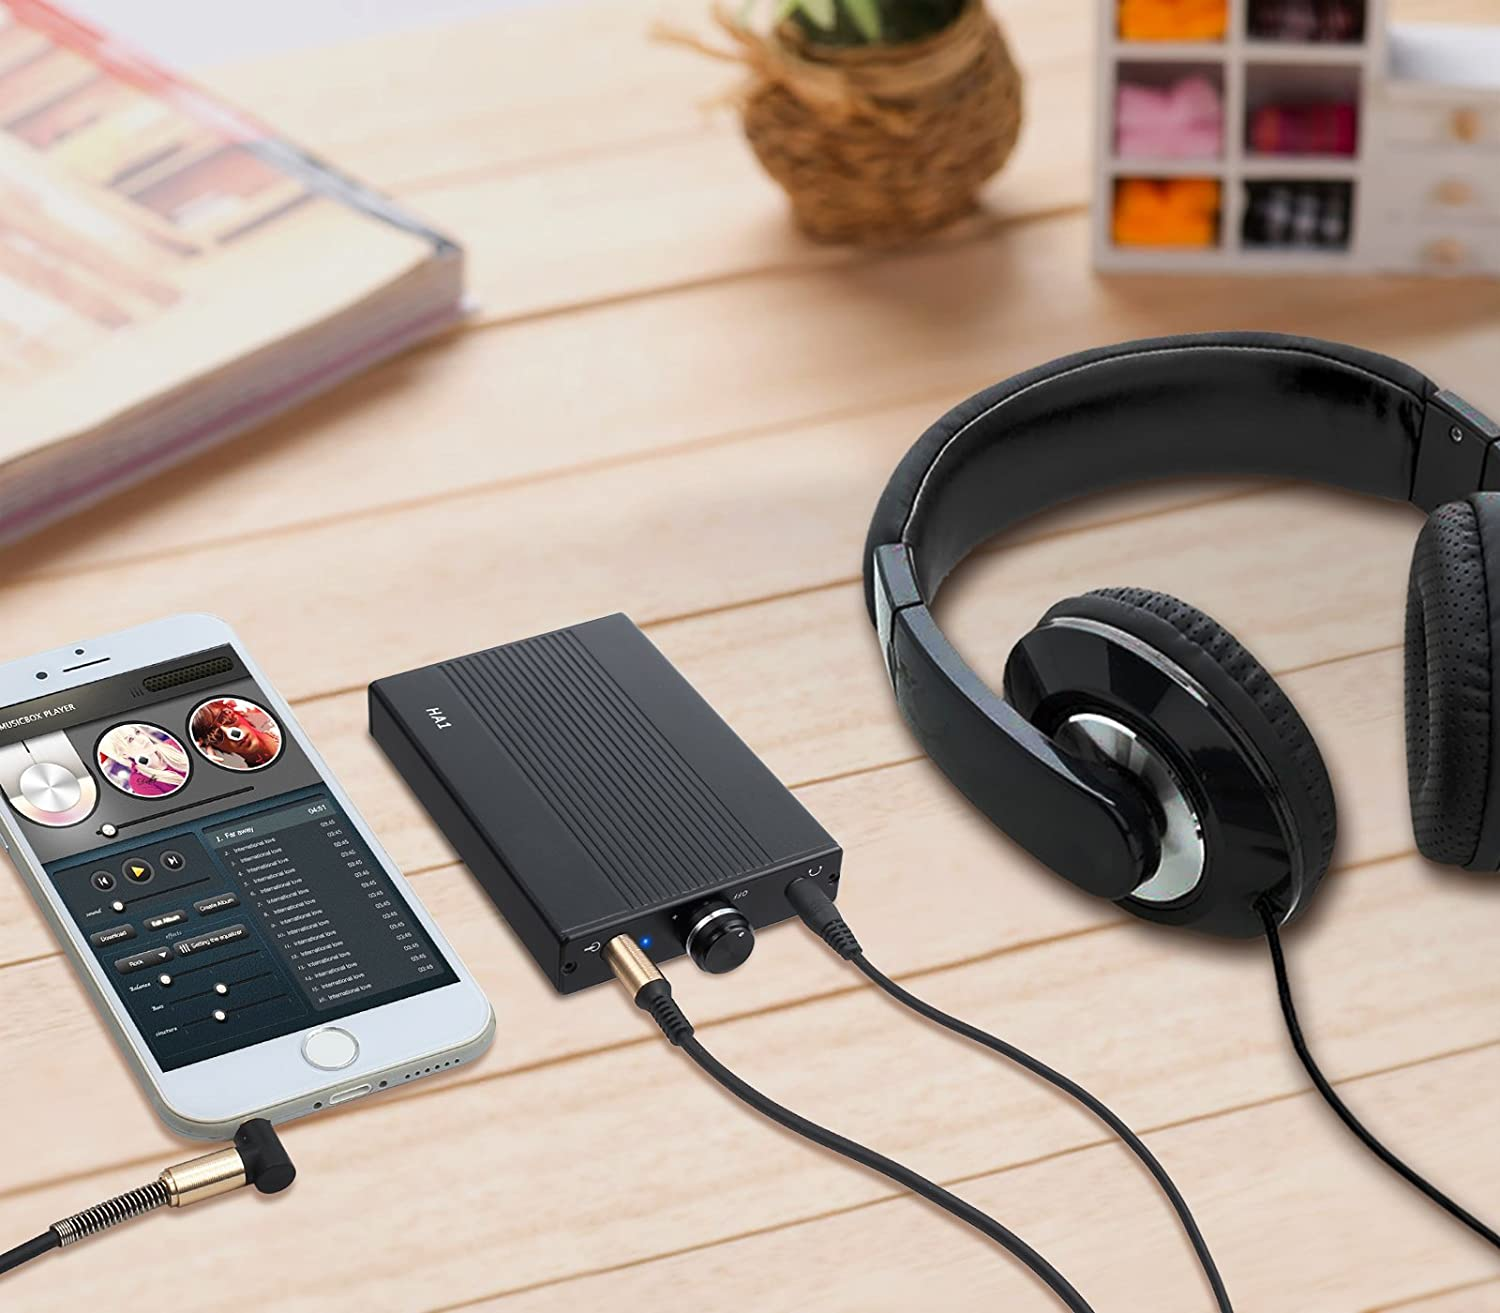 LiNKFOR Portable Headphone Amplifier with 2000mAH Lithium Battery Portable Headphone amp 3.5mm Audio Rechargeble HiFi Earphone Phones Audio Amplifier for MP3 MP4 Phone ipad and Computer